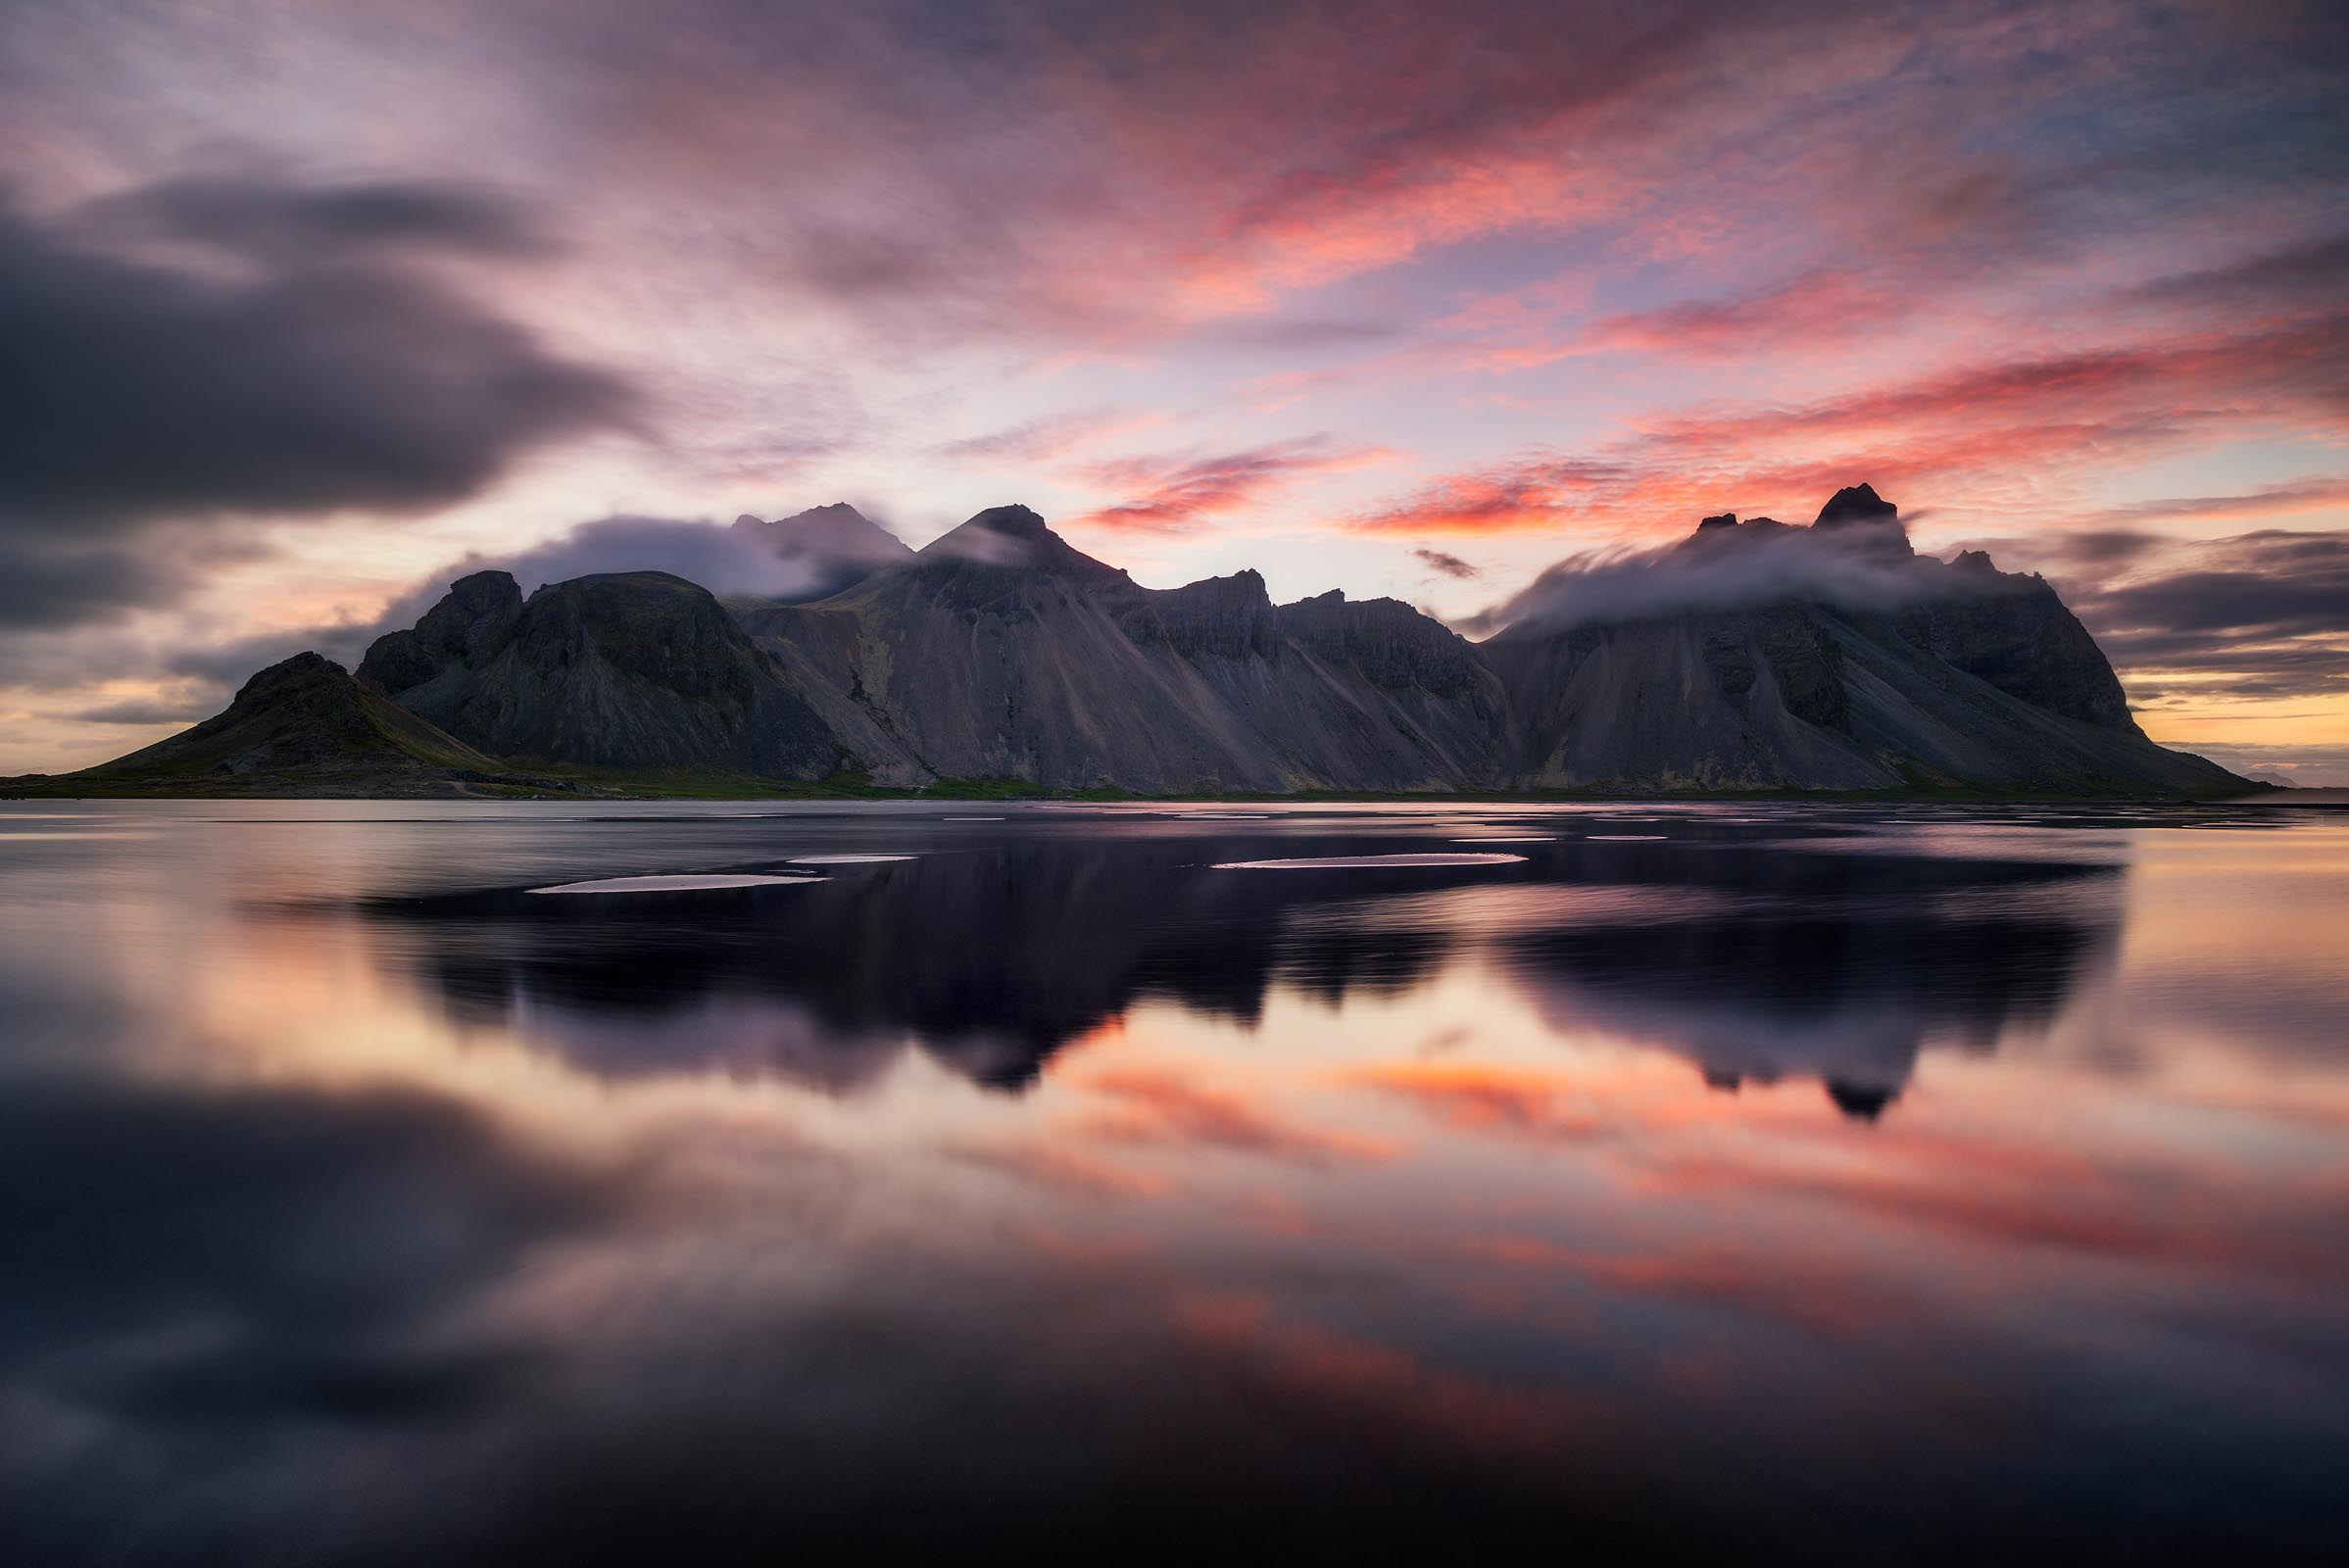 Photograph of Vestrahorn Mountain in Stokksnes, Iceland by Brent Goldman Photography